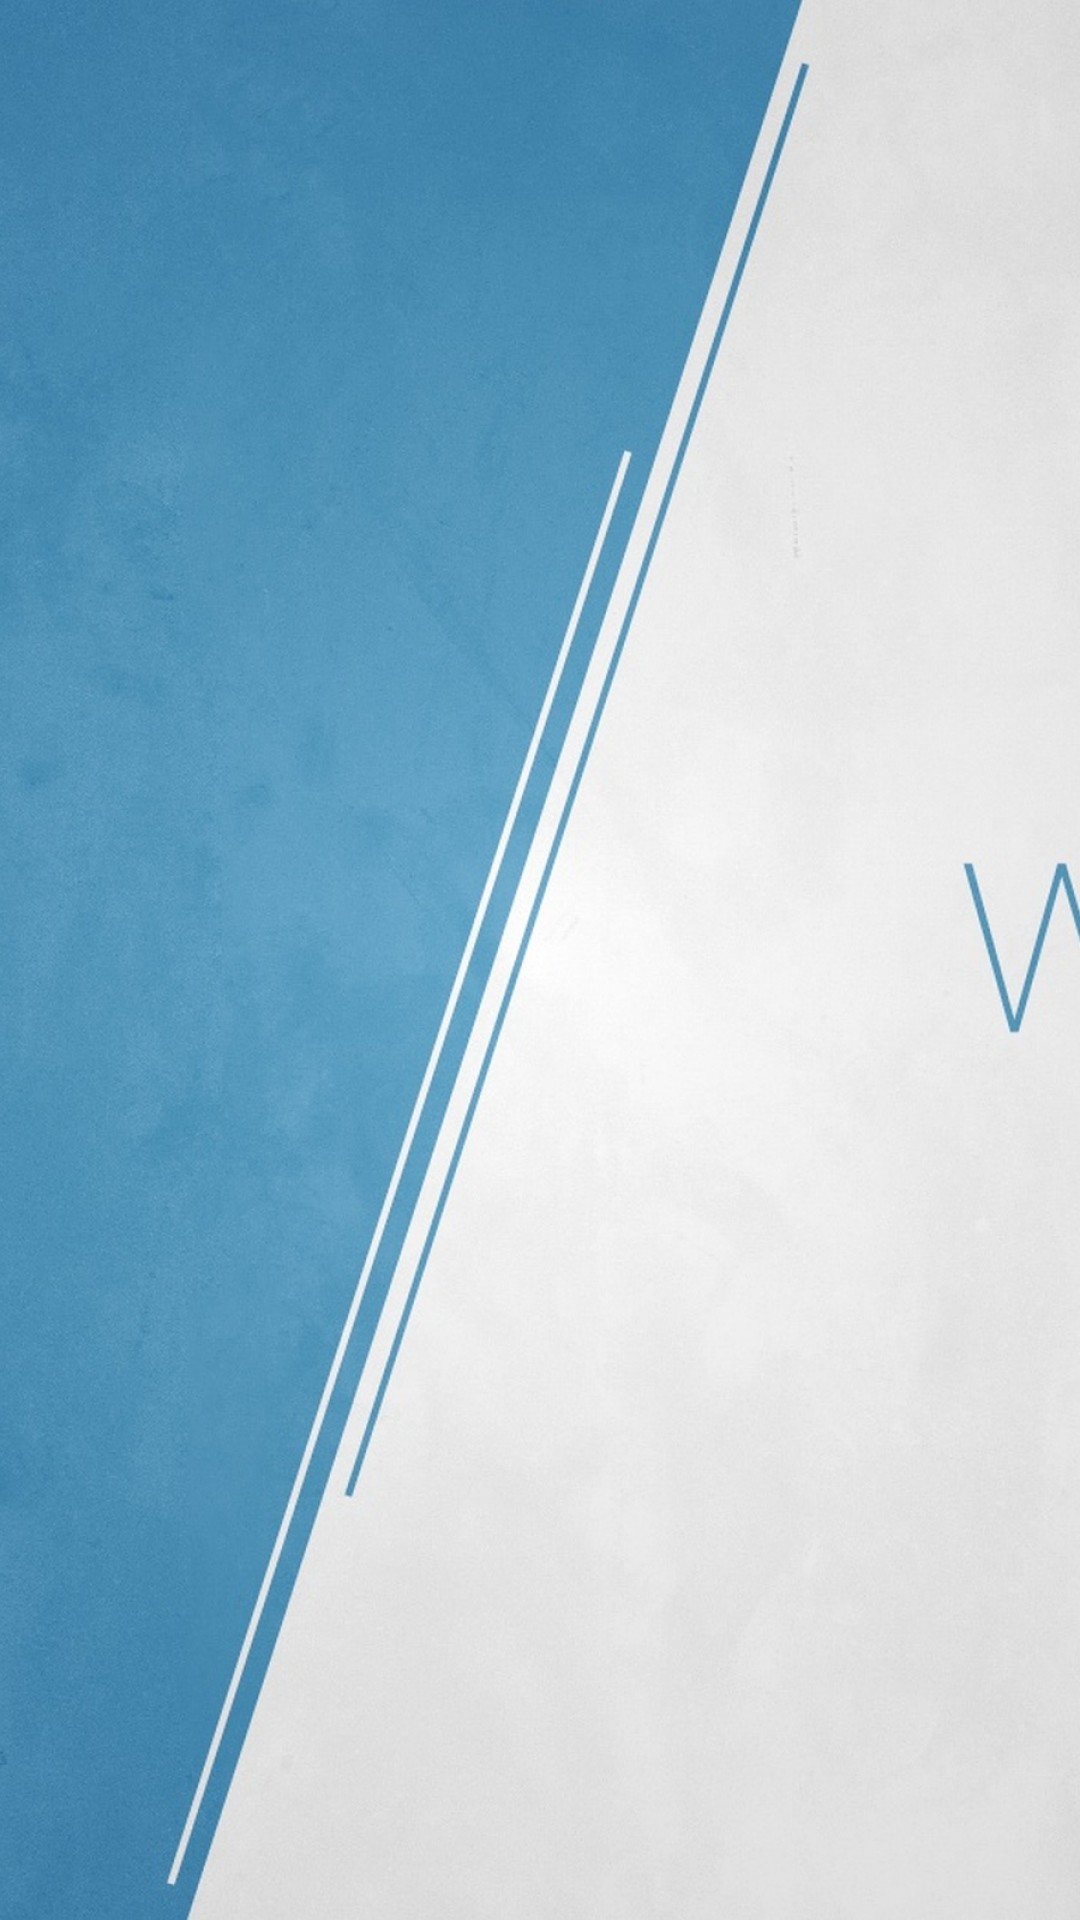 1080x1920 Preview wallpaper white, blue, lettering